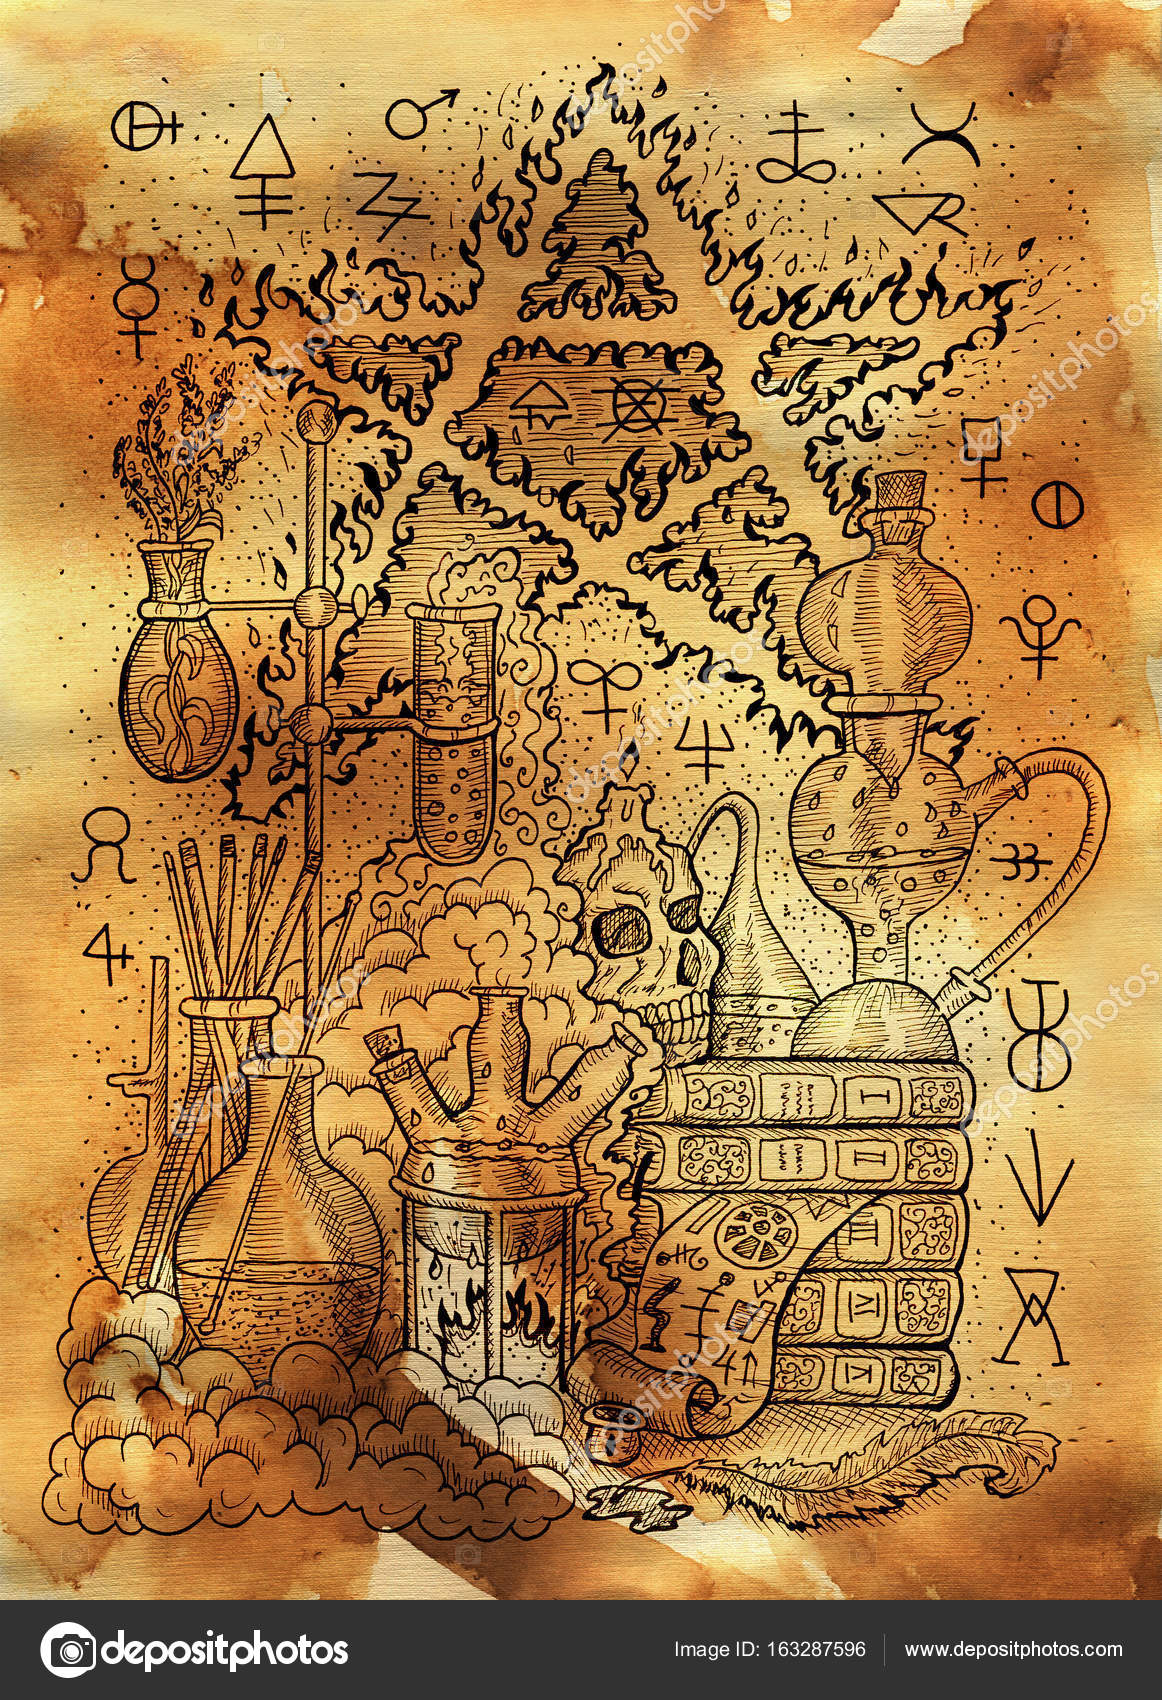 Mystic illustration with alchemical symbols skull fire pentagram mystic illustration with alchemical symbols skull fire pentagram and laboratory equipment on old paper biocorpaavc